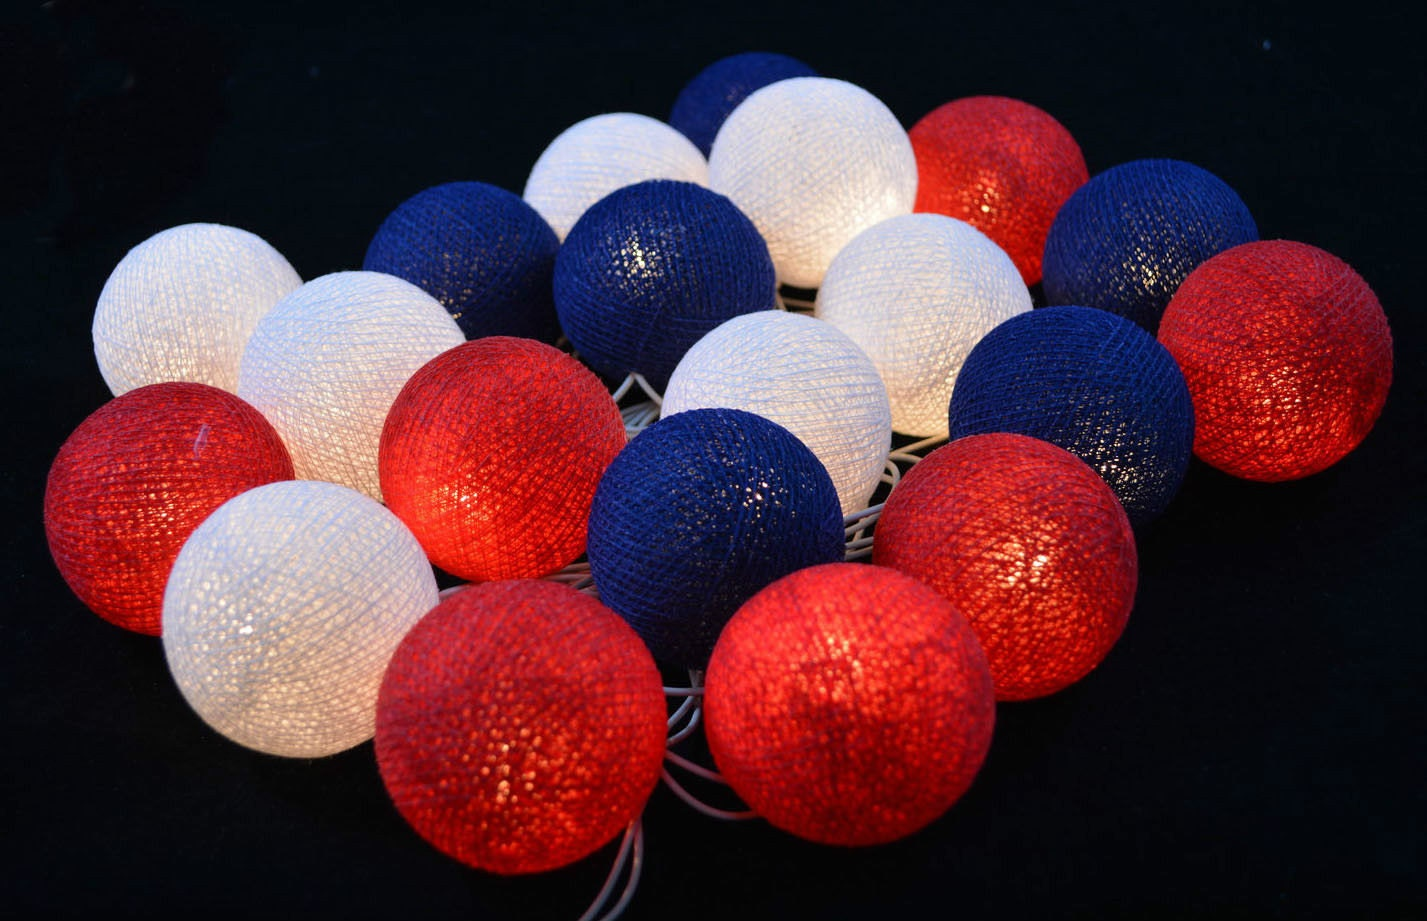 white red navy blue cotton ball string lights fairy lights. Black Bedroom Furniture Sets. Home Design Ideas